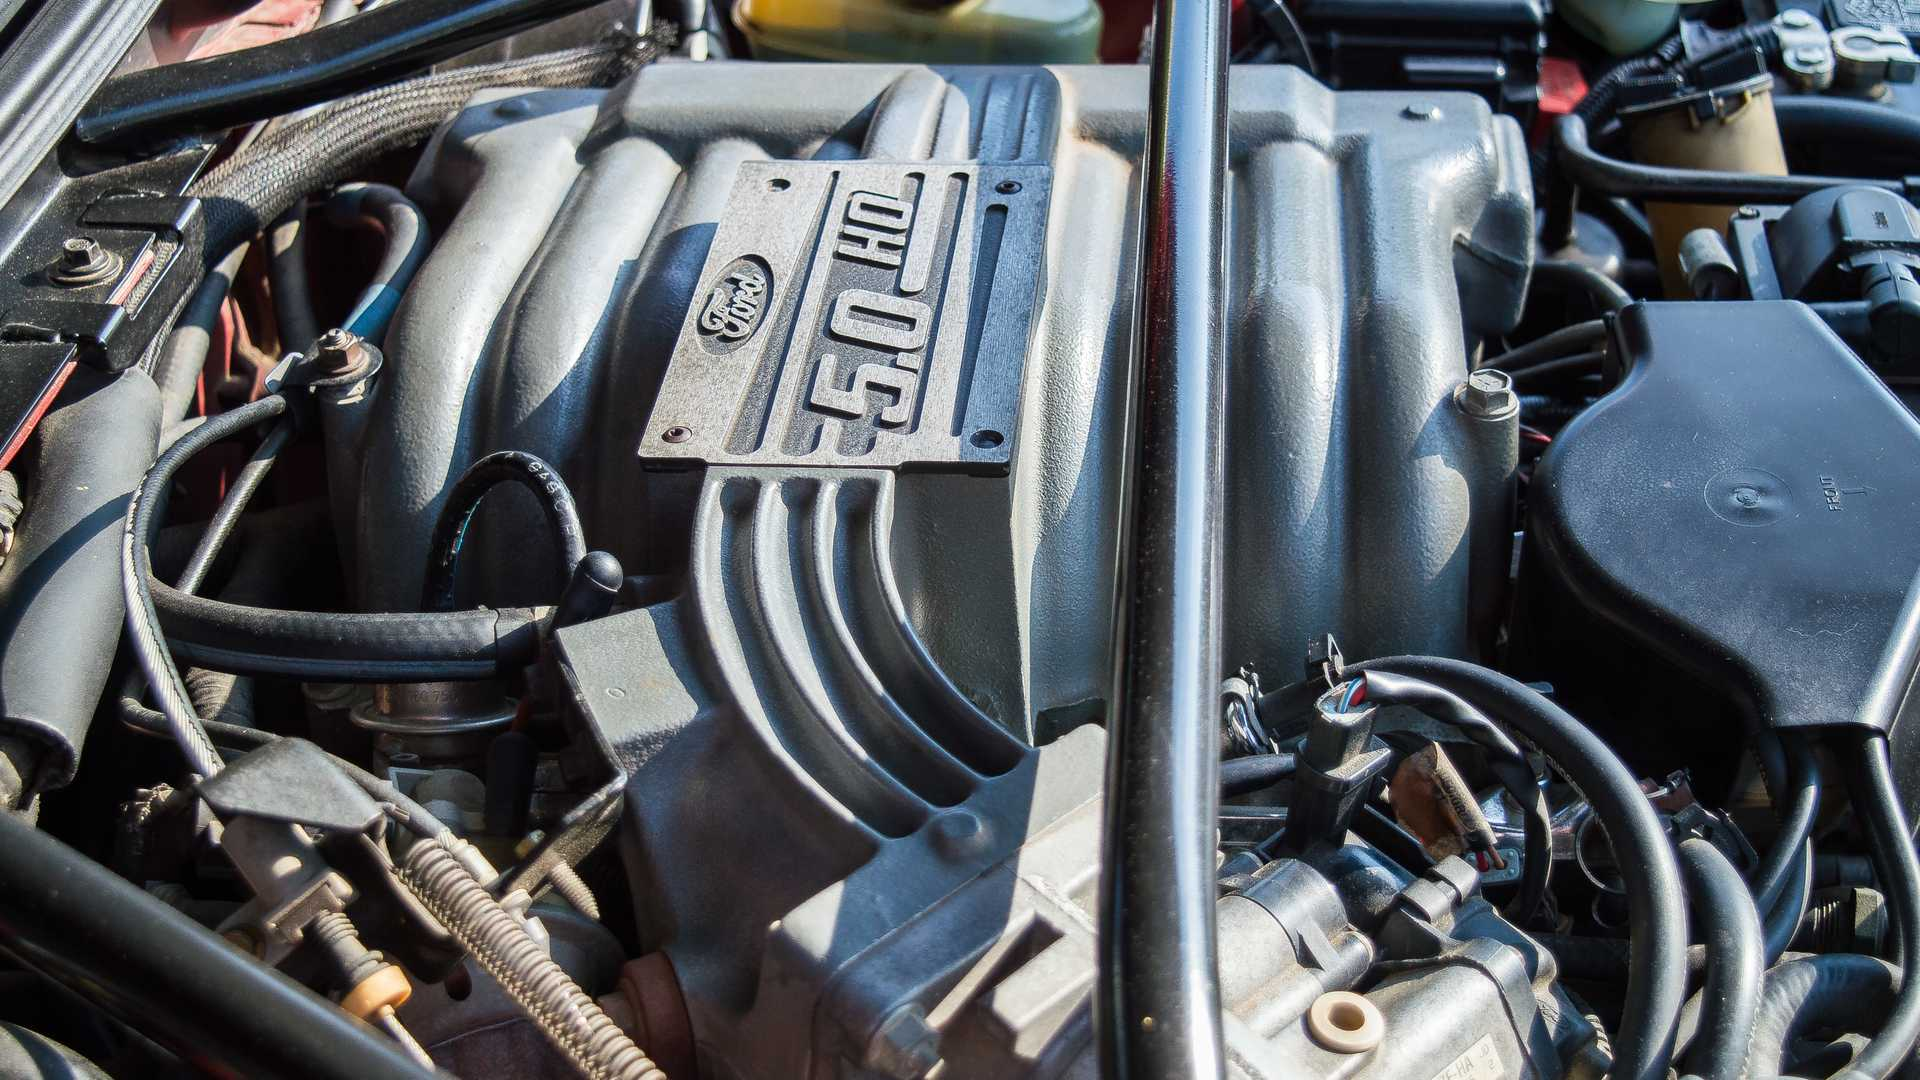 ford coyote 5 0 engine diagram ford s last 5 0 pushrod v8 mustang engine makes surprising hp on dyno  pushrod v8 mustang engine